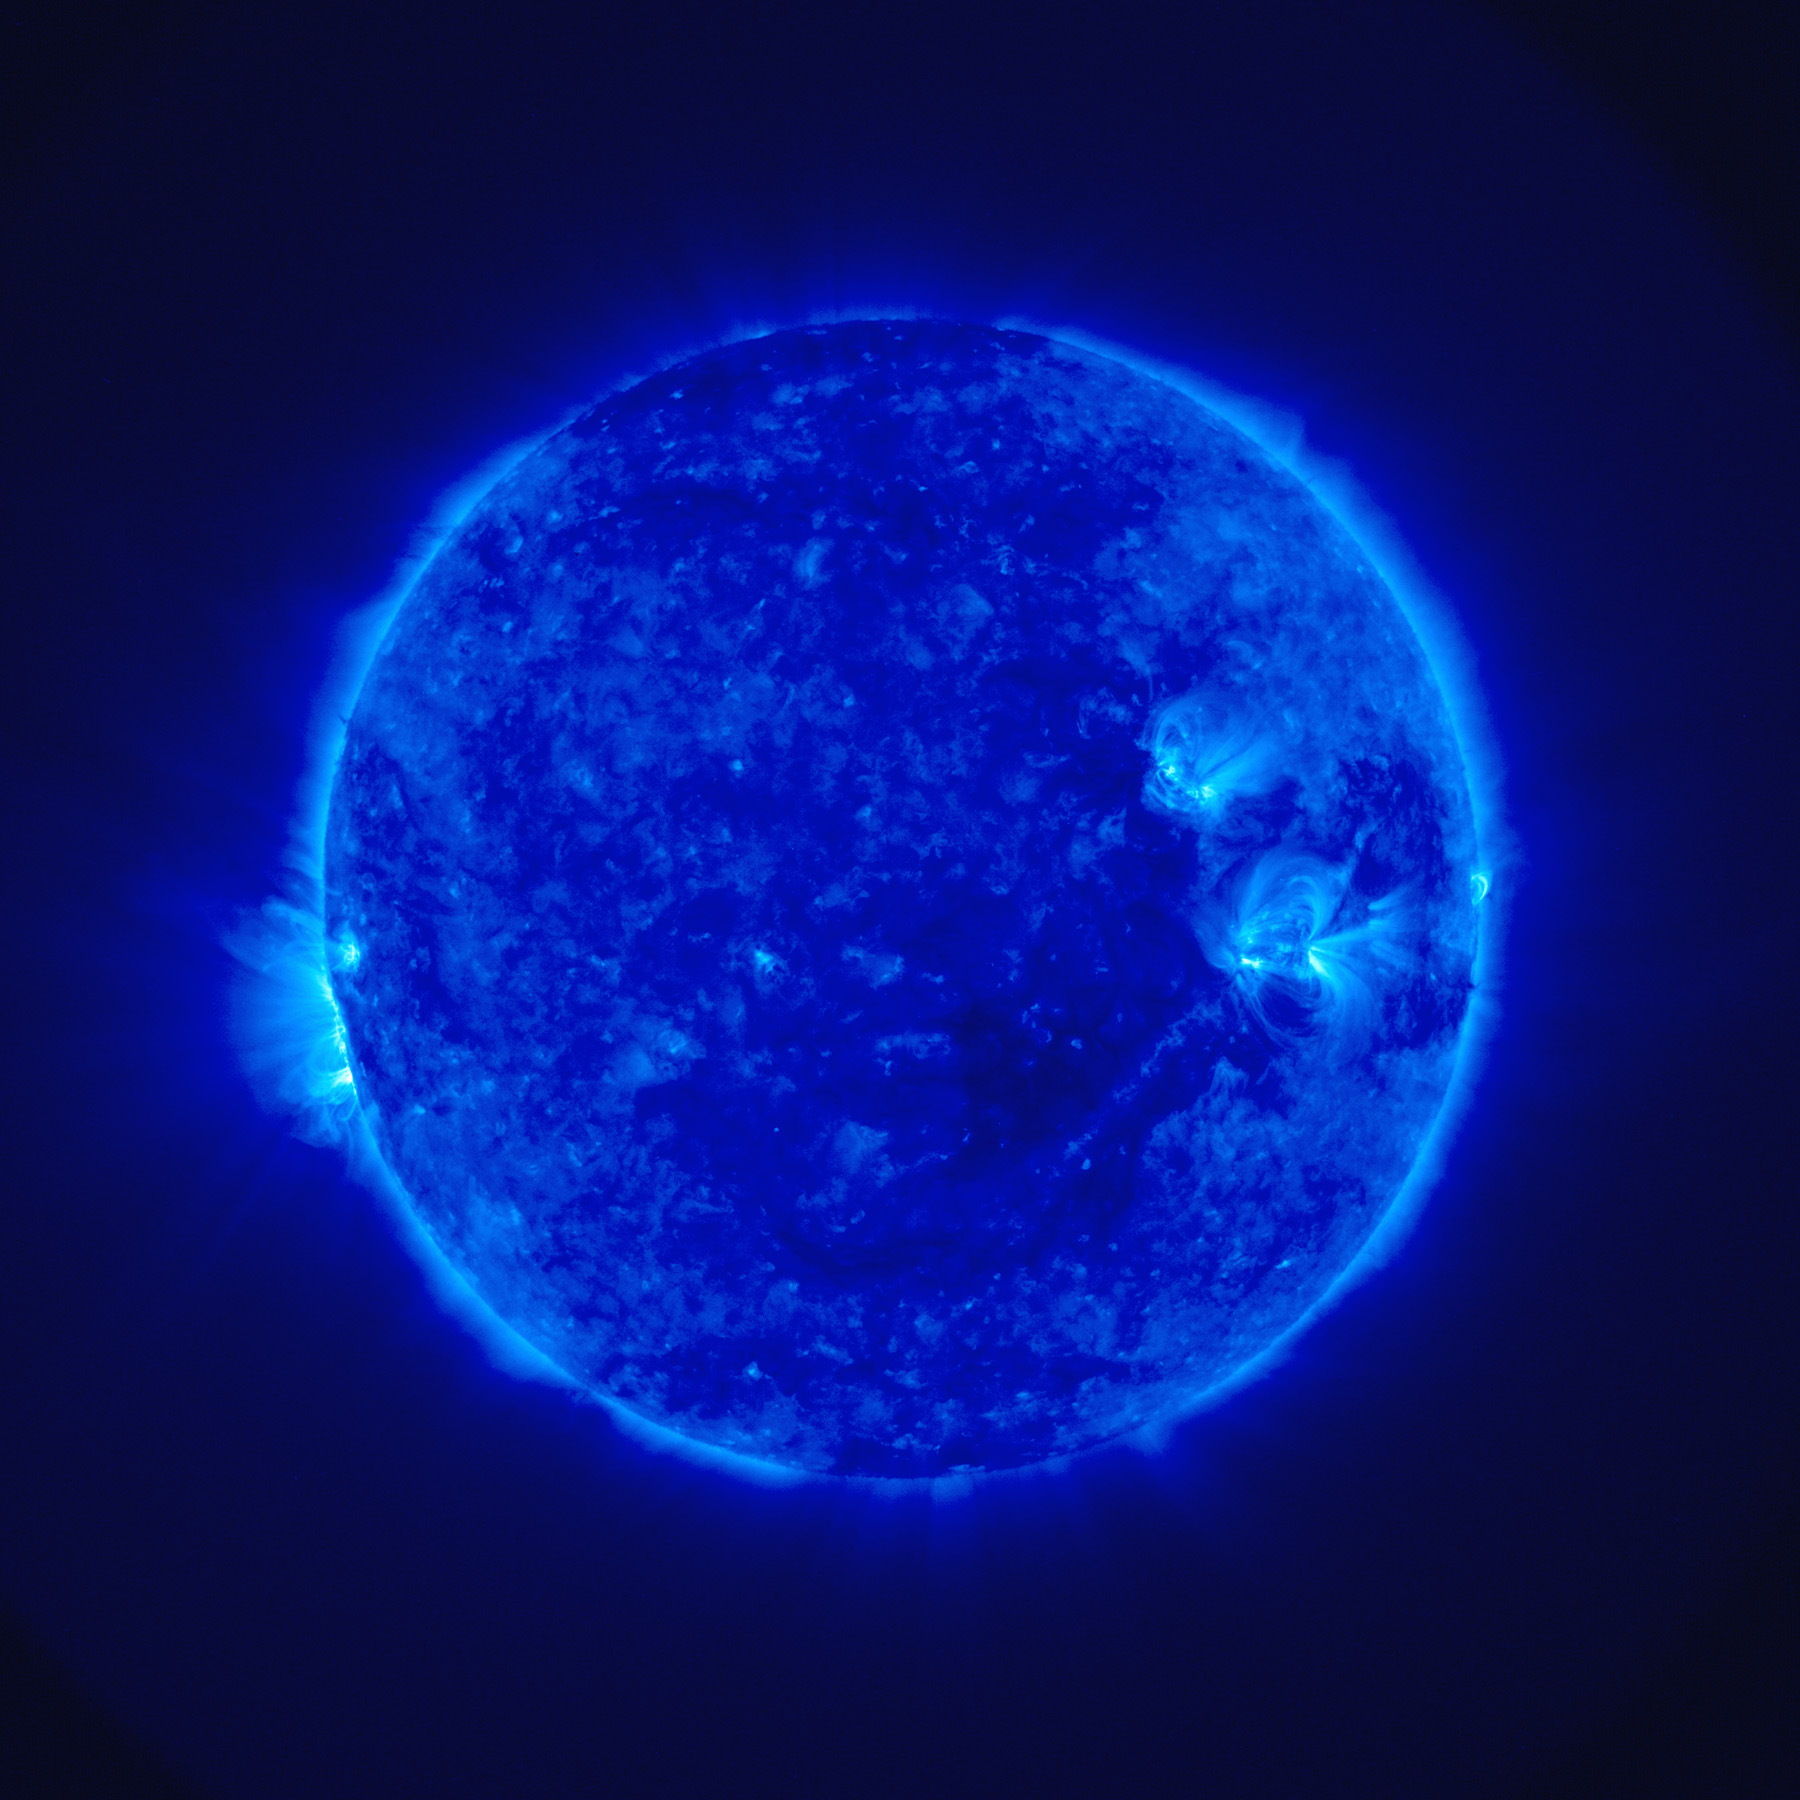 Sun From Space: Pictures Of The Sun